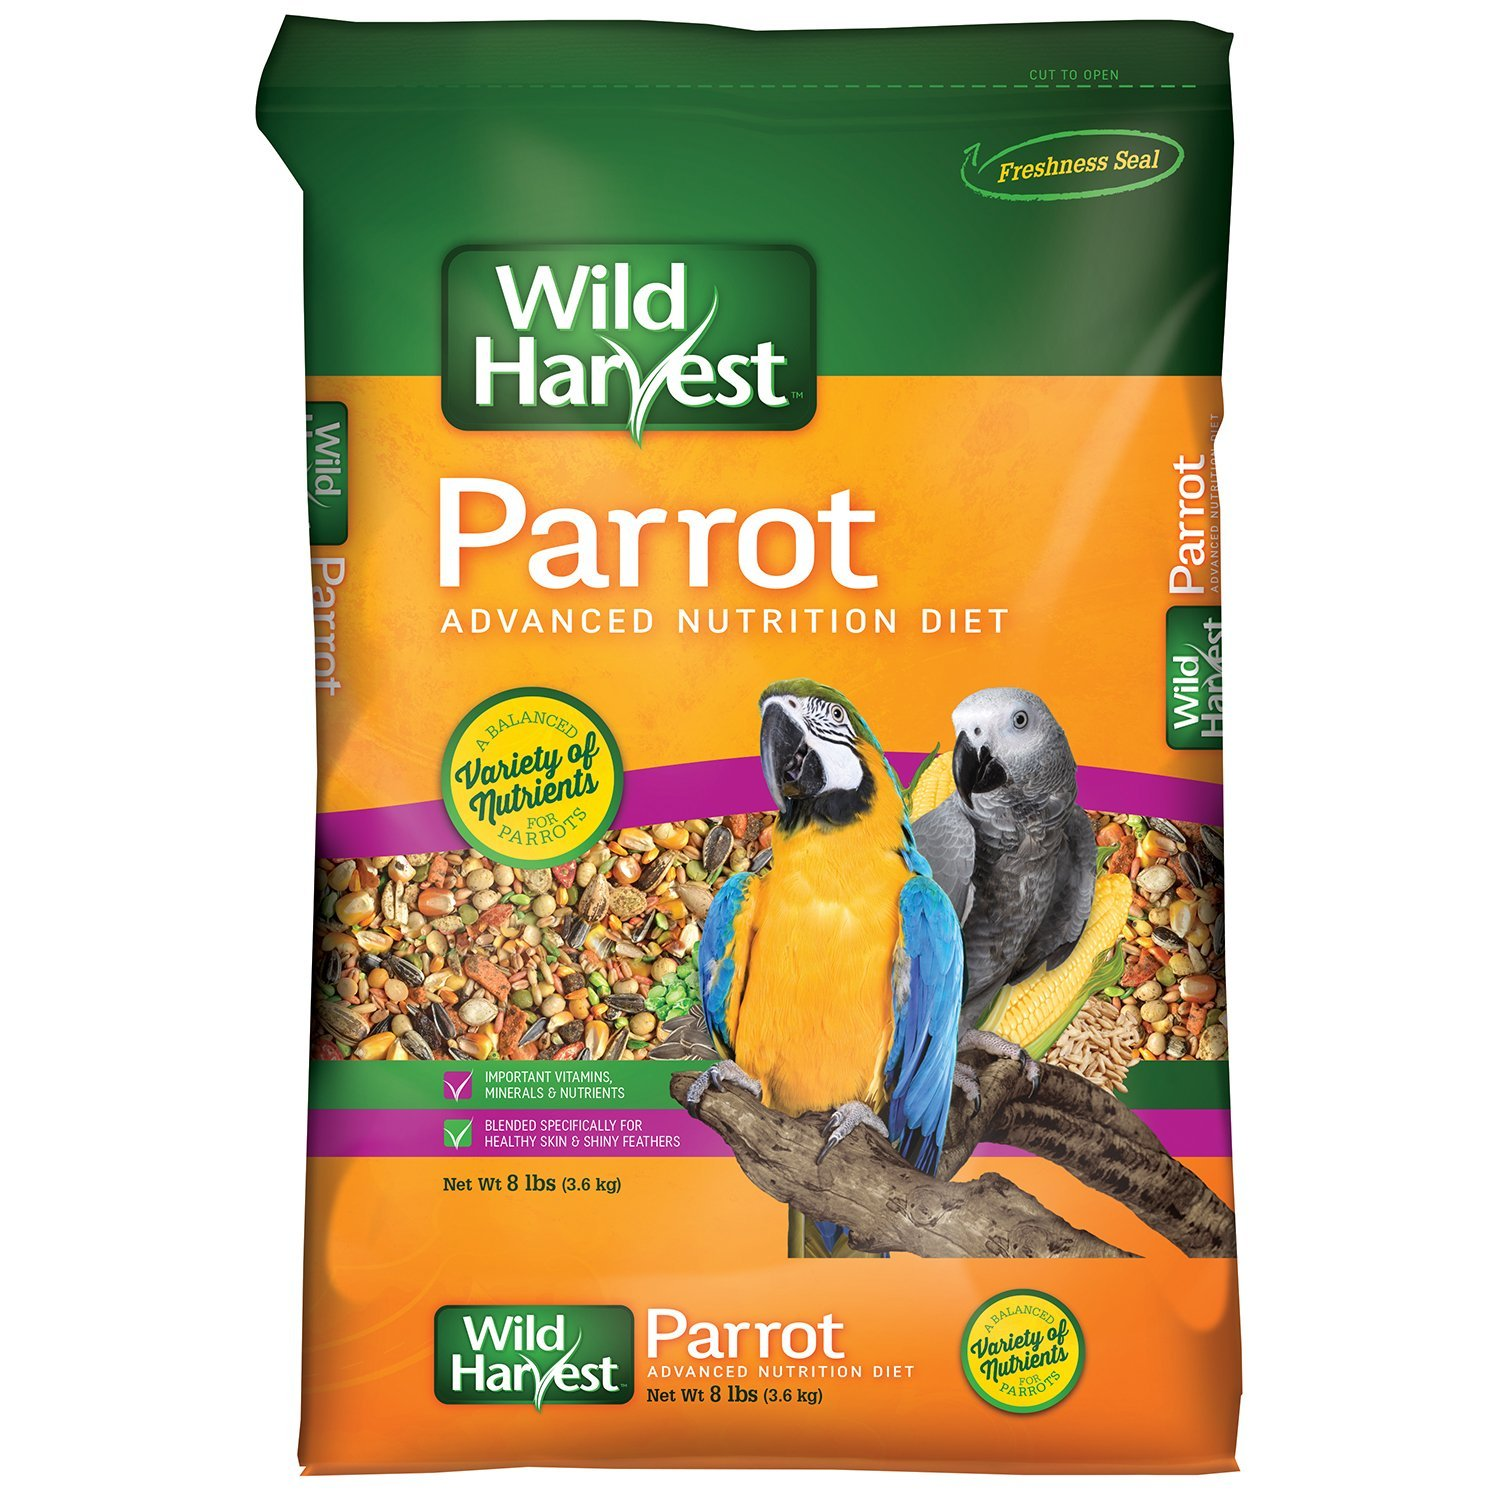 Wild Harvest Parrot Advanced Nurtrition Diet Dry Bird Food, 8 lbs